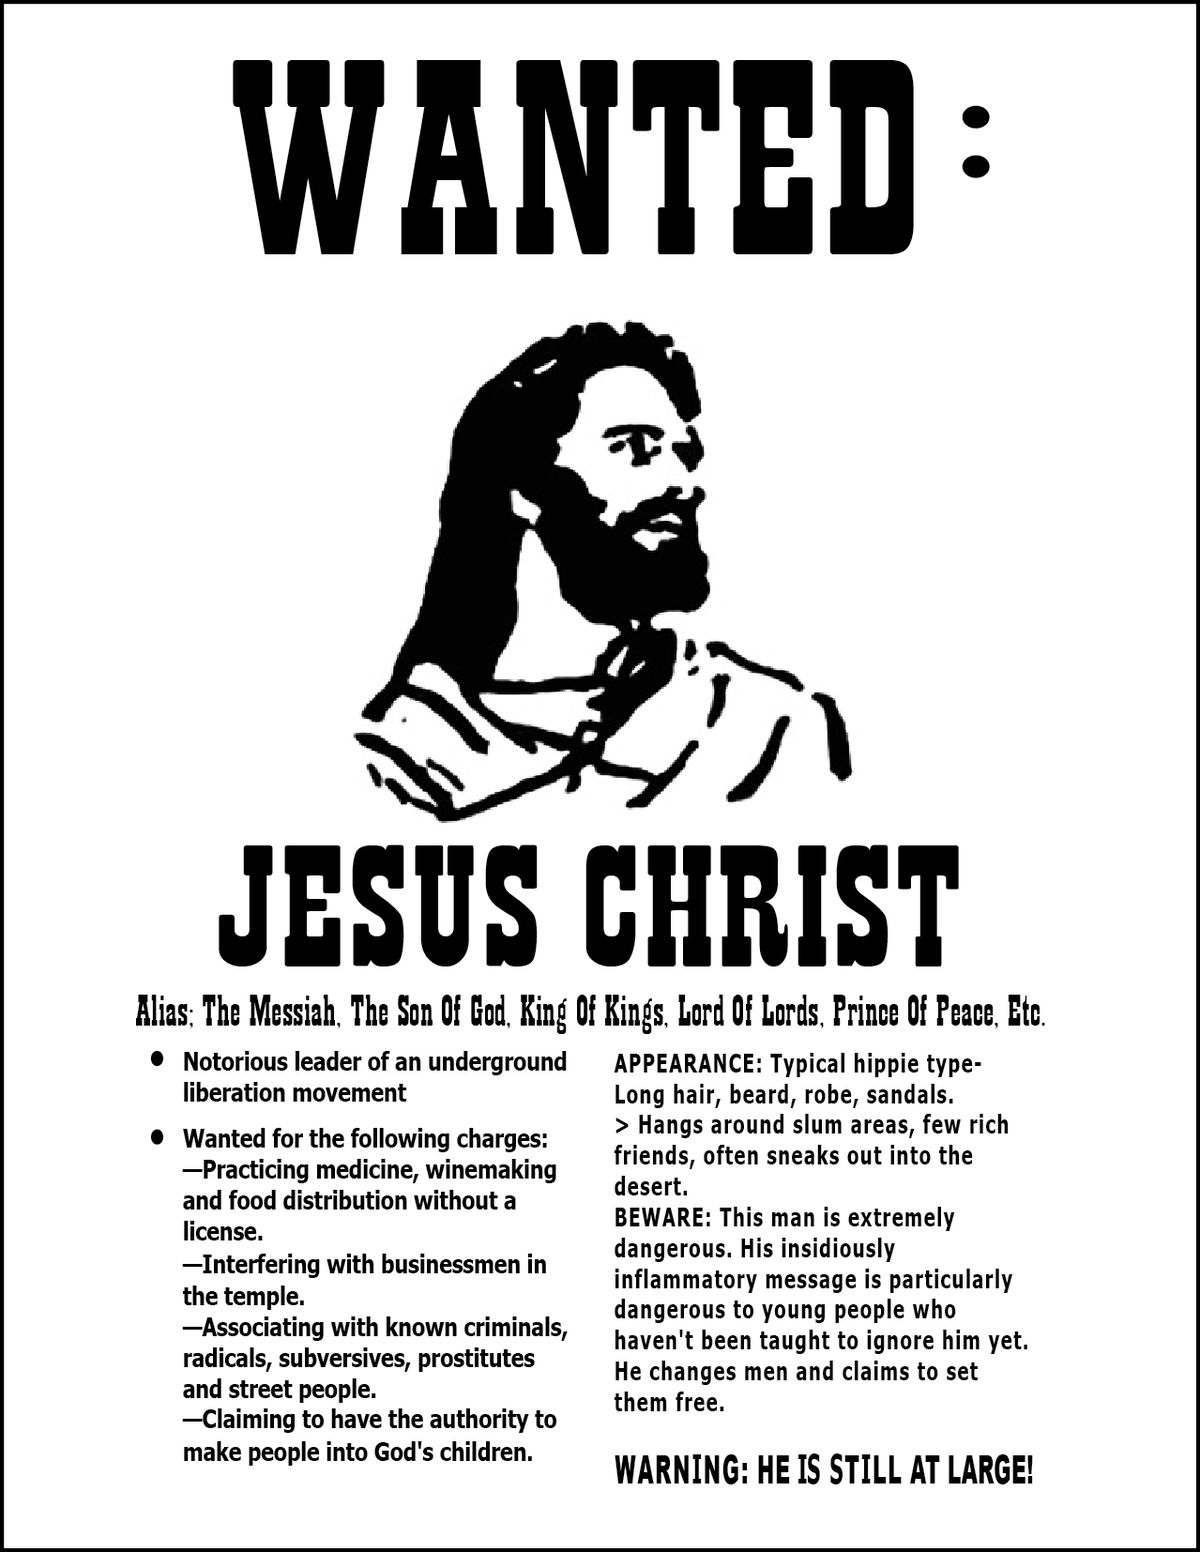 """A """"wanted"""" poster produced by an alternative newspaper depicted Jesus as a """"leader of an underground liberation movement"""""""